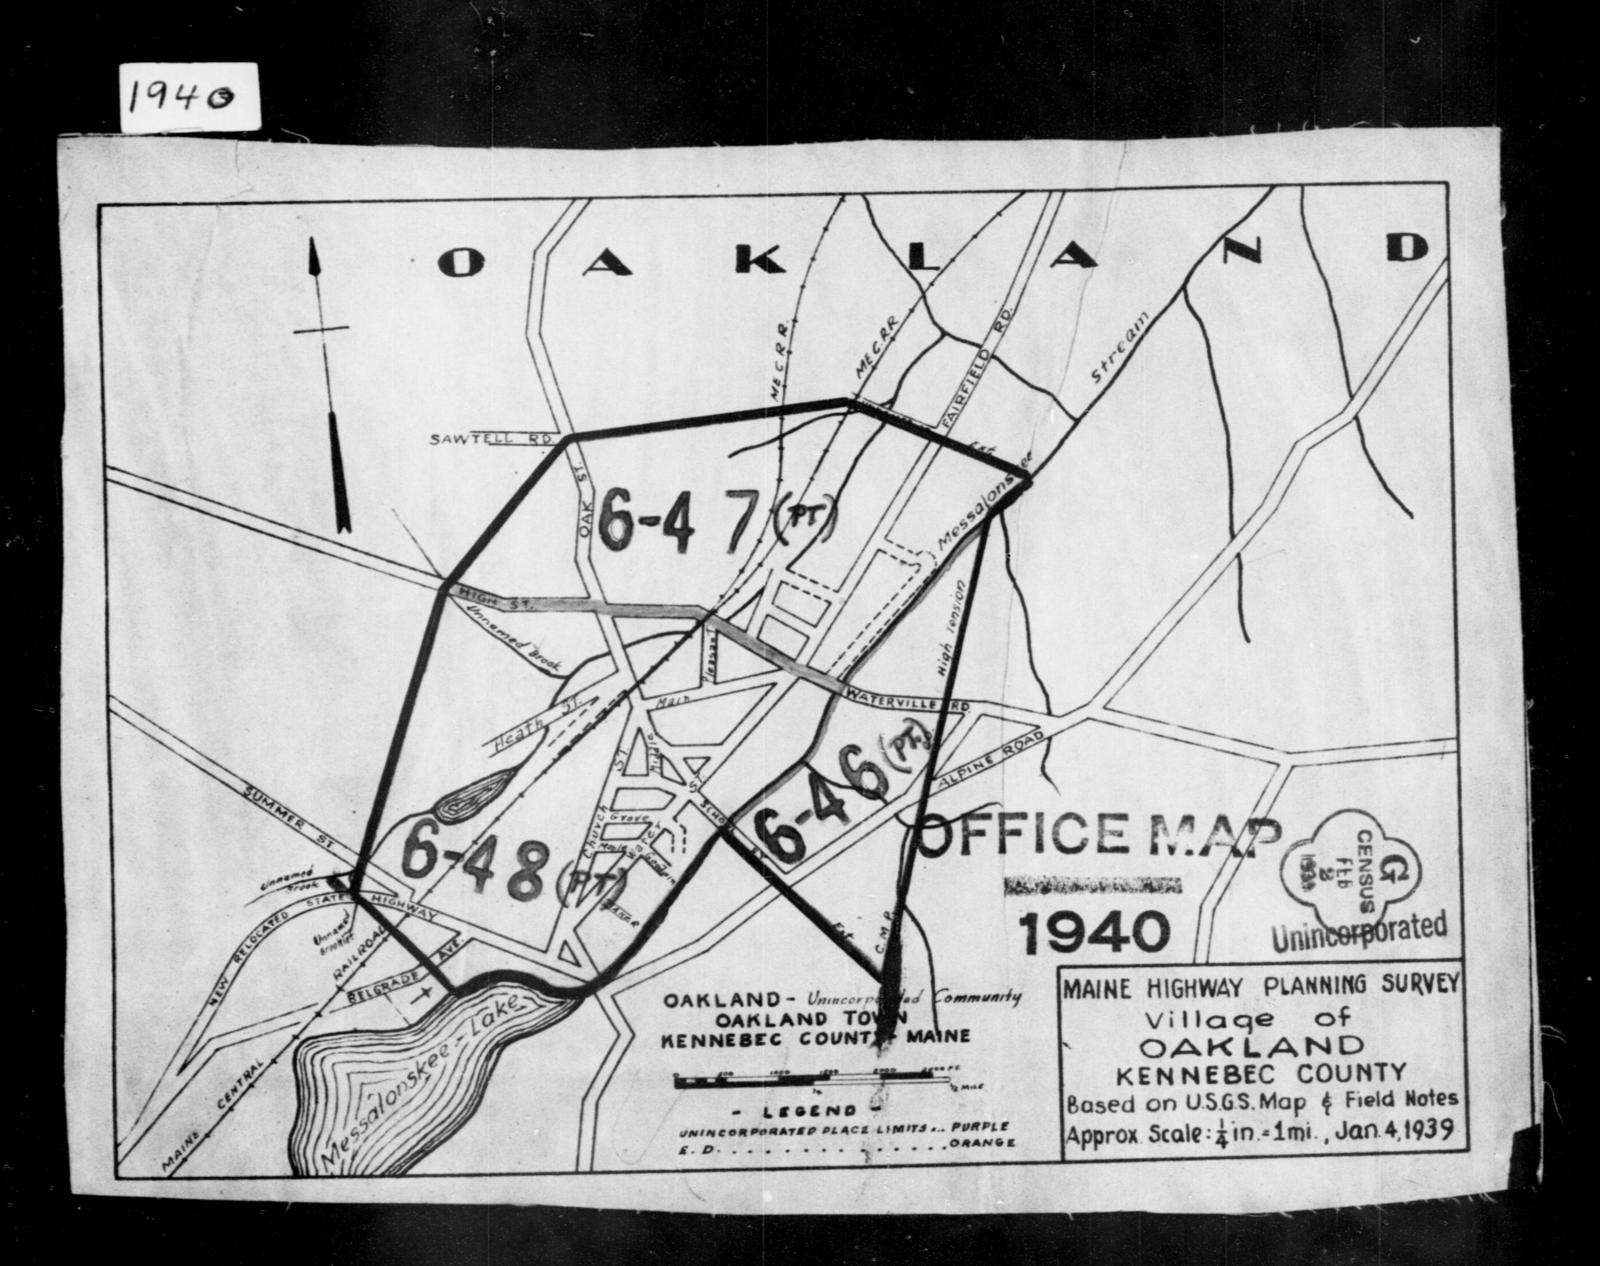 1940 Census Enumeration District Maps Maine Kennebec County